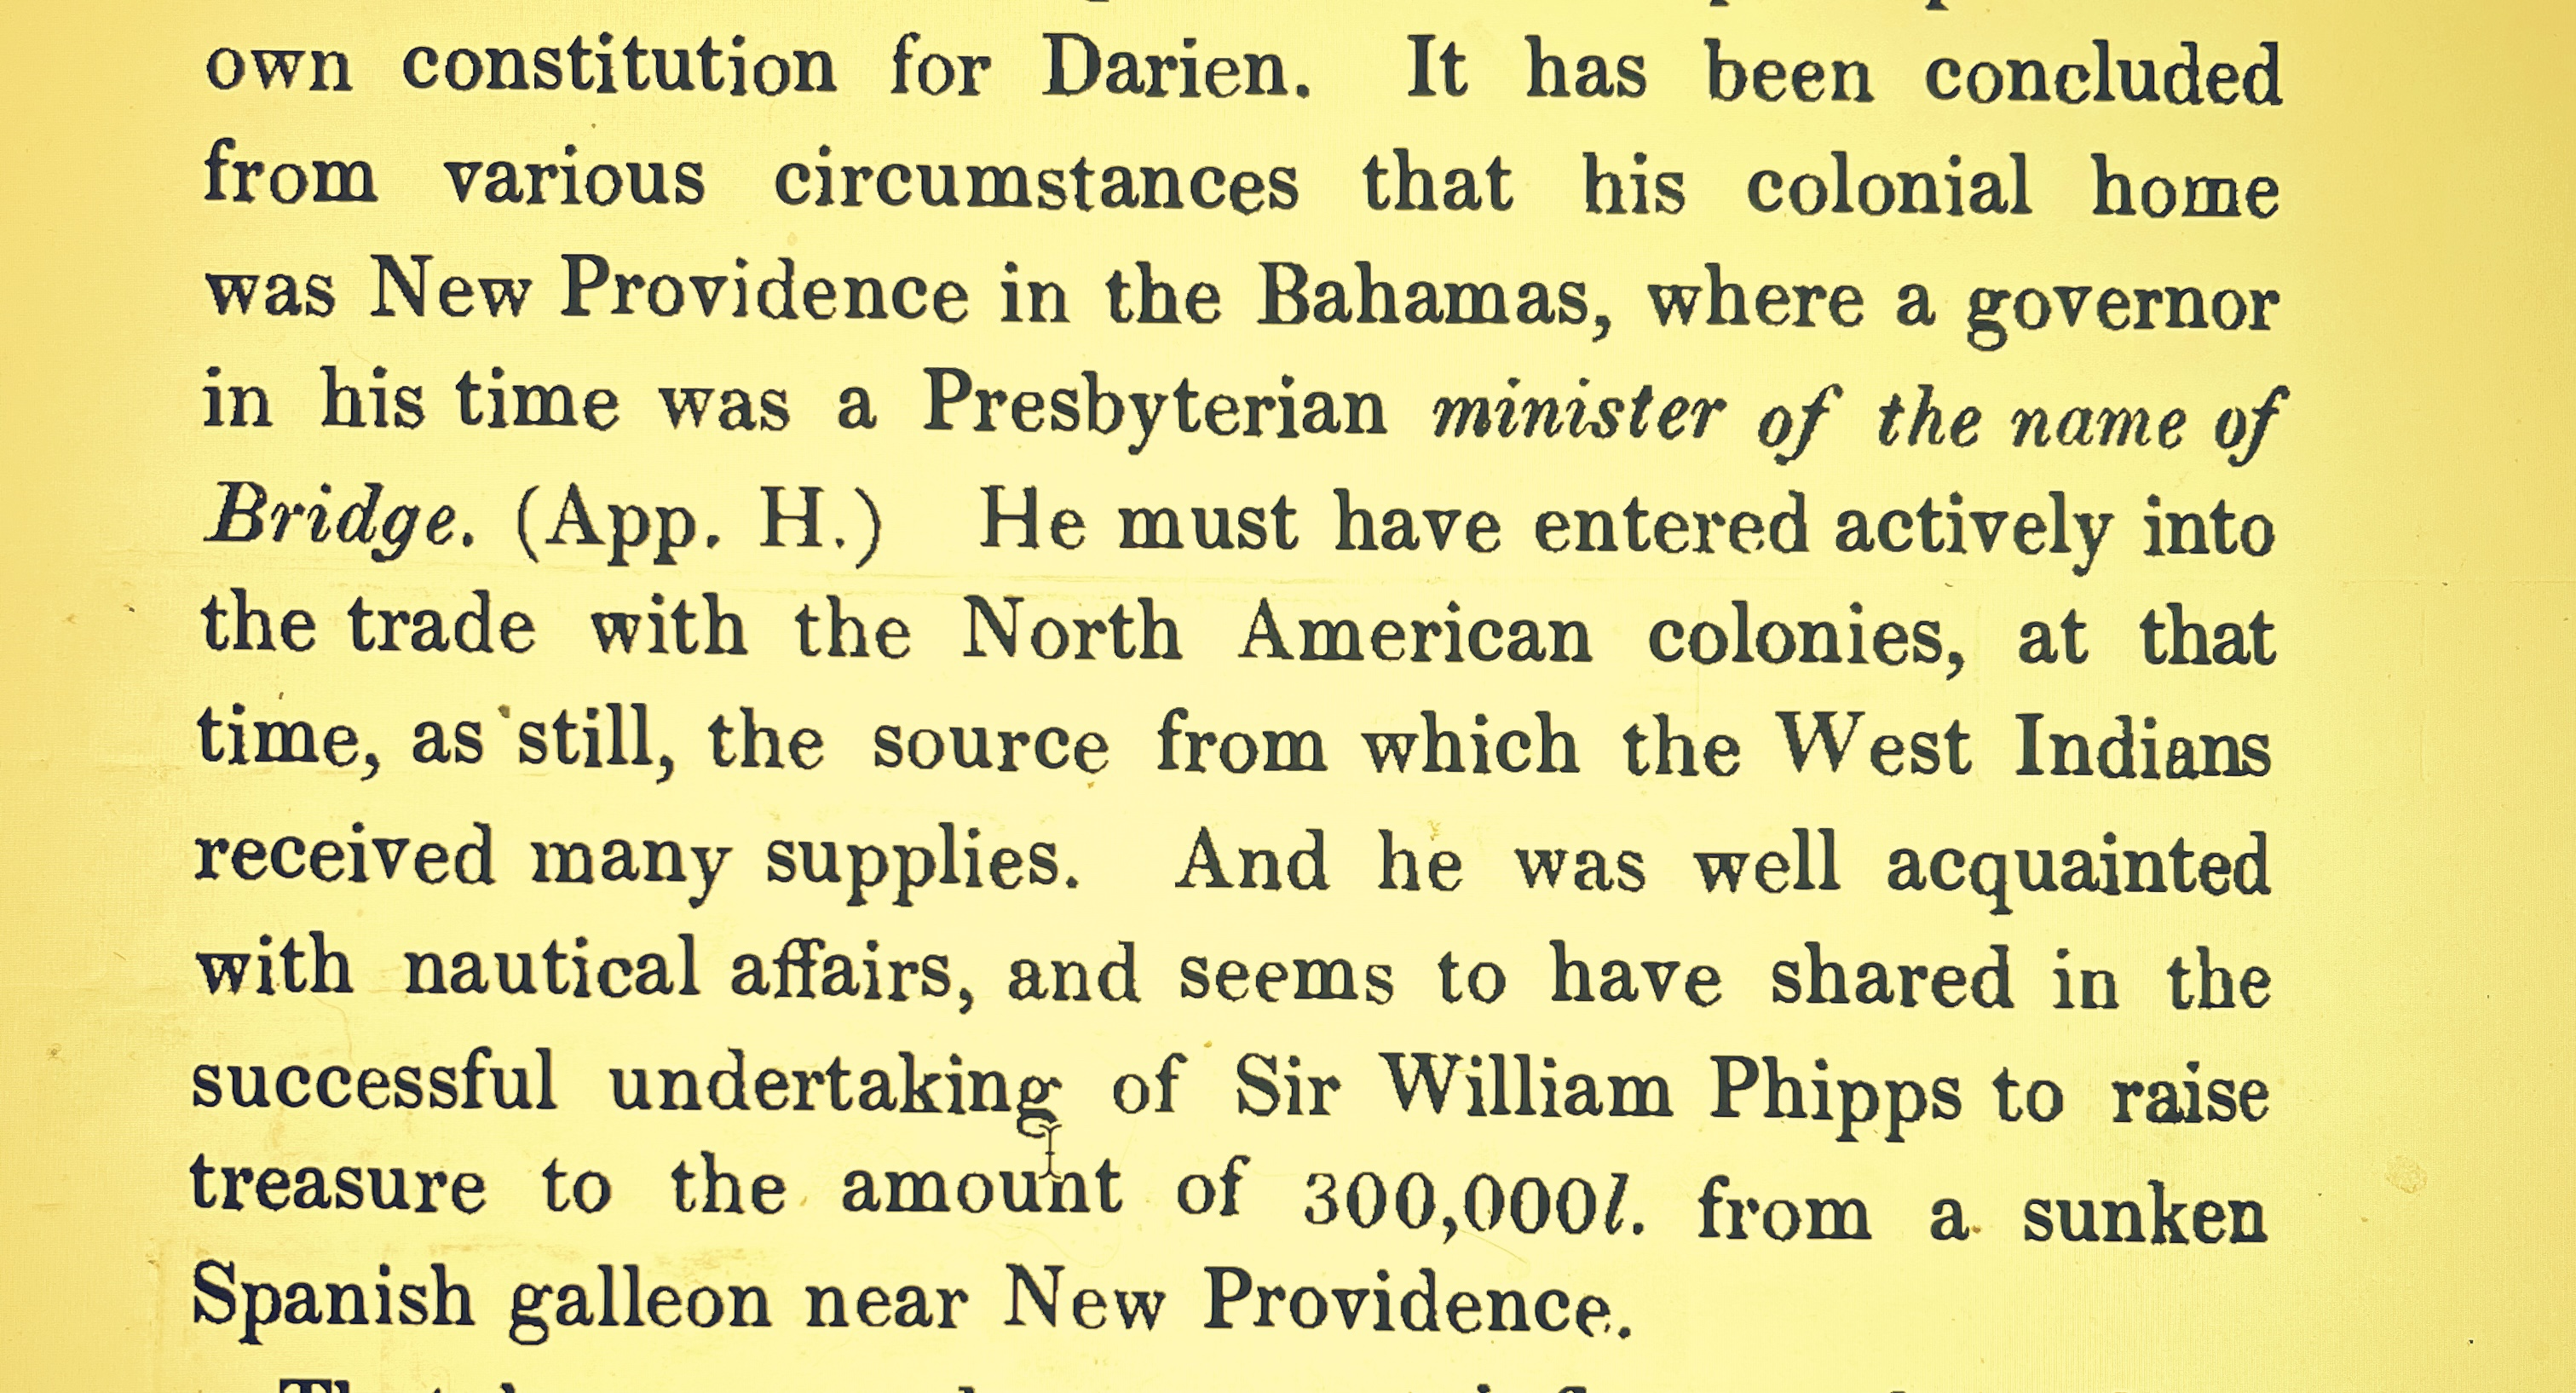 William Paterson Founder of the Bank of England was once a Wealthy Merchant In New Providence, The Bahamas